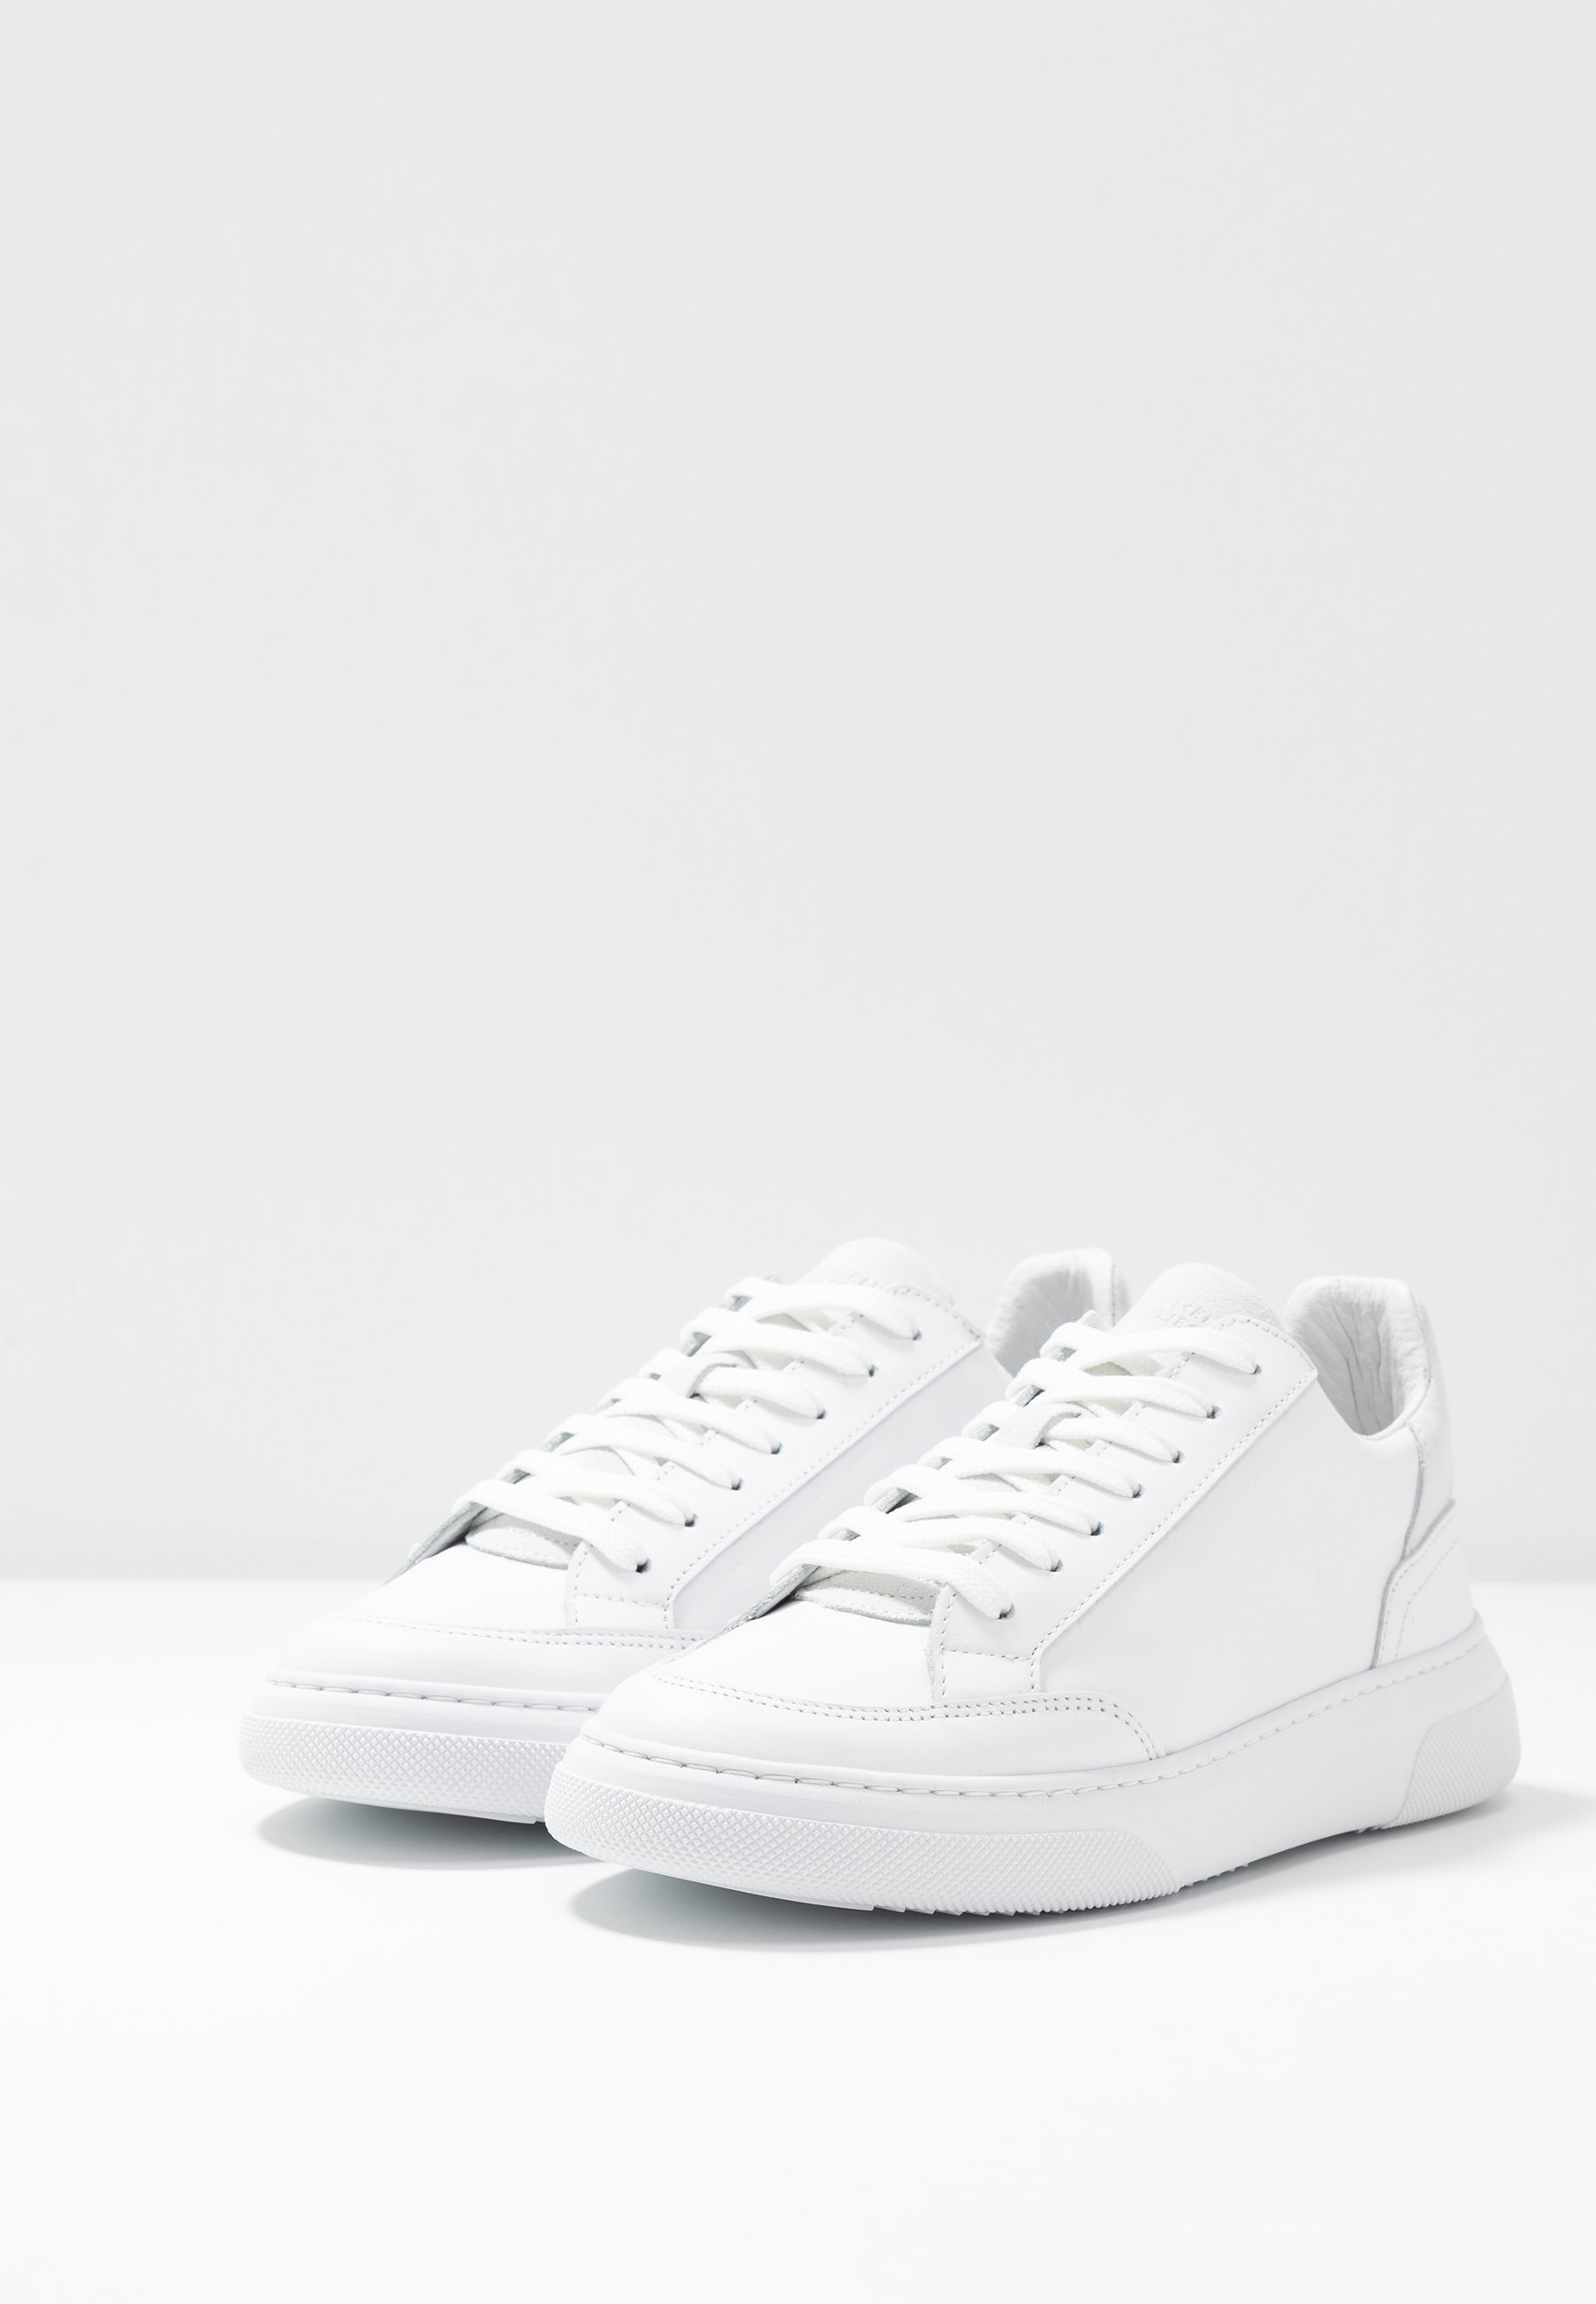 GARMENT PROJECT Sneakers - plaster/white